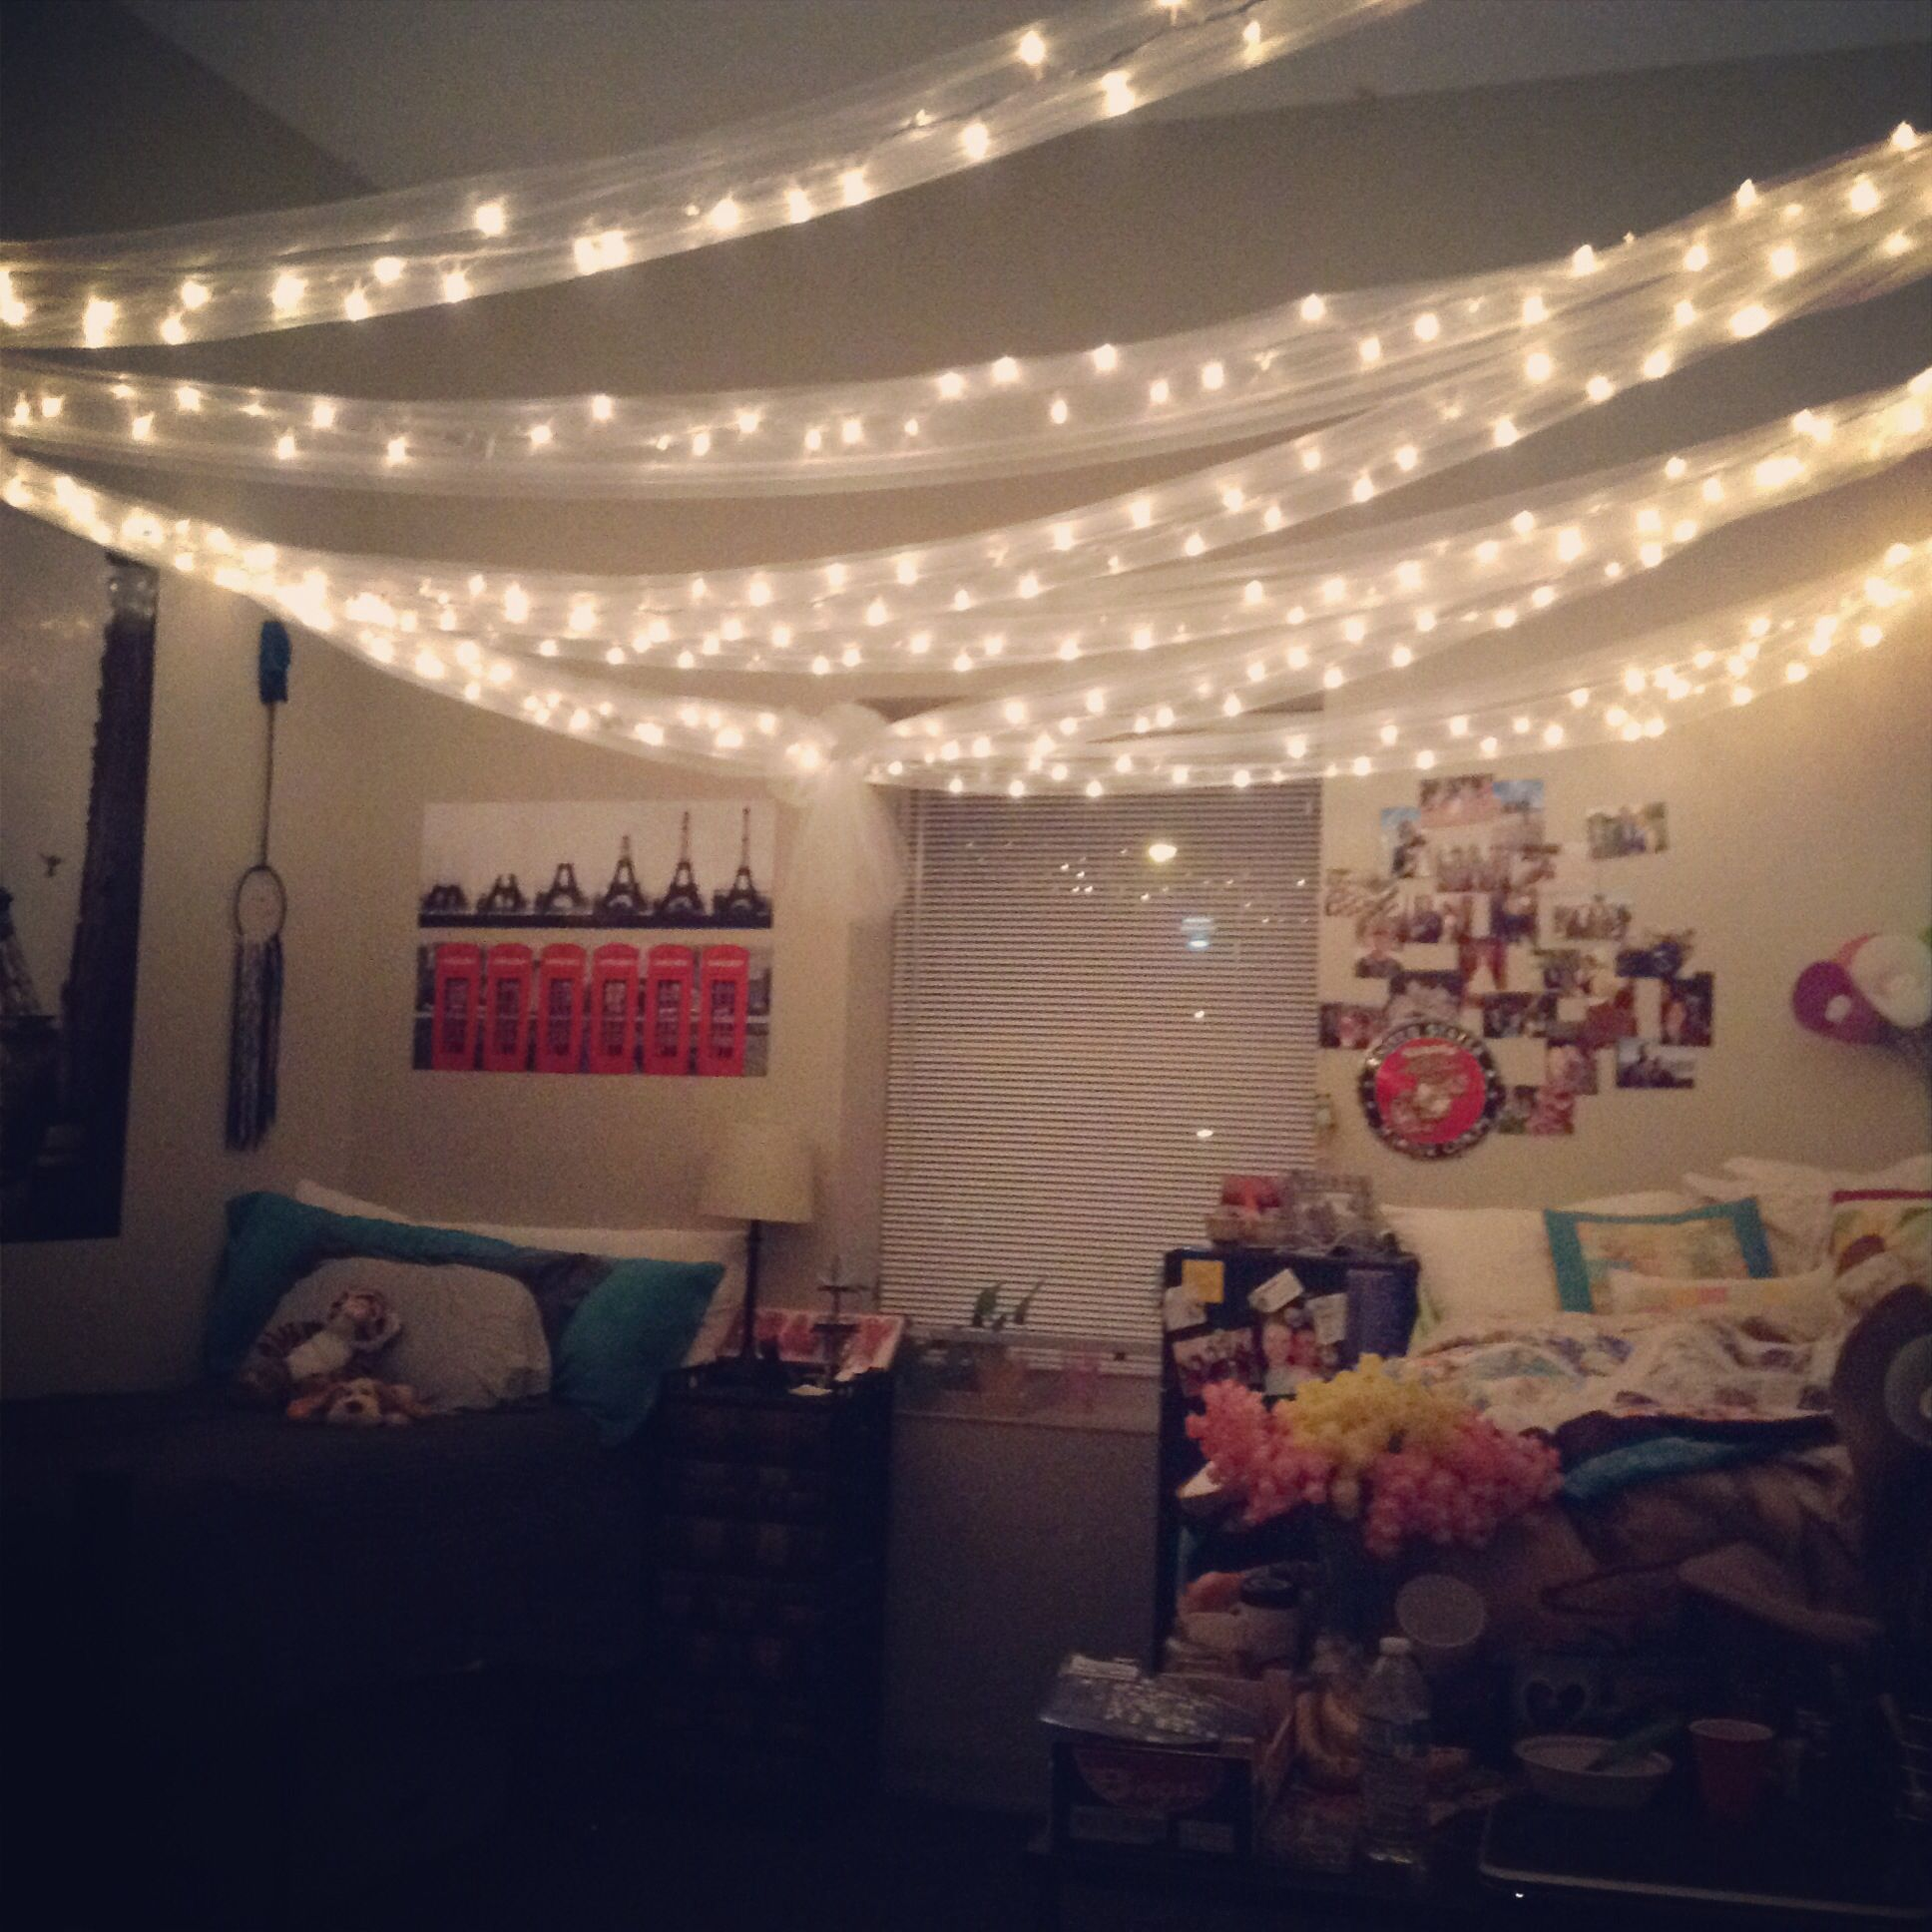 Christmas Lights In A Dorm Room For Decoration My Roommate And I